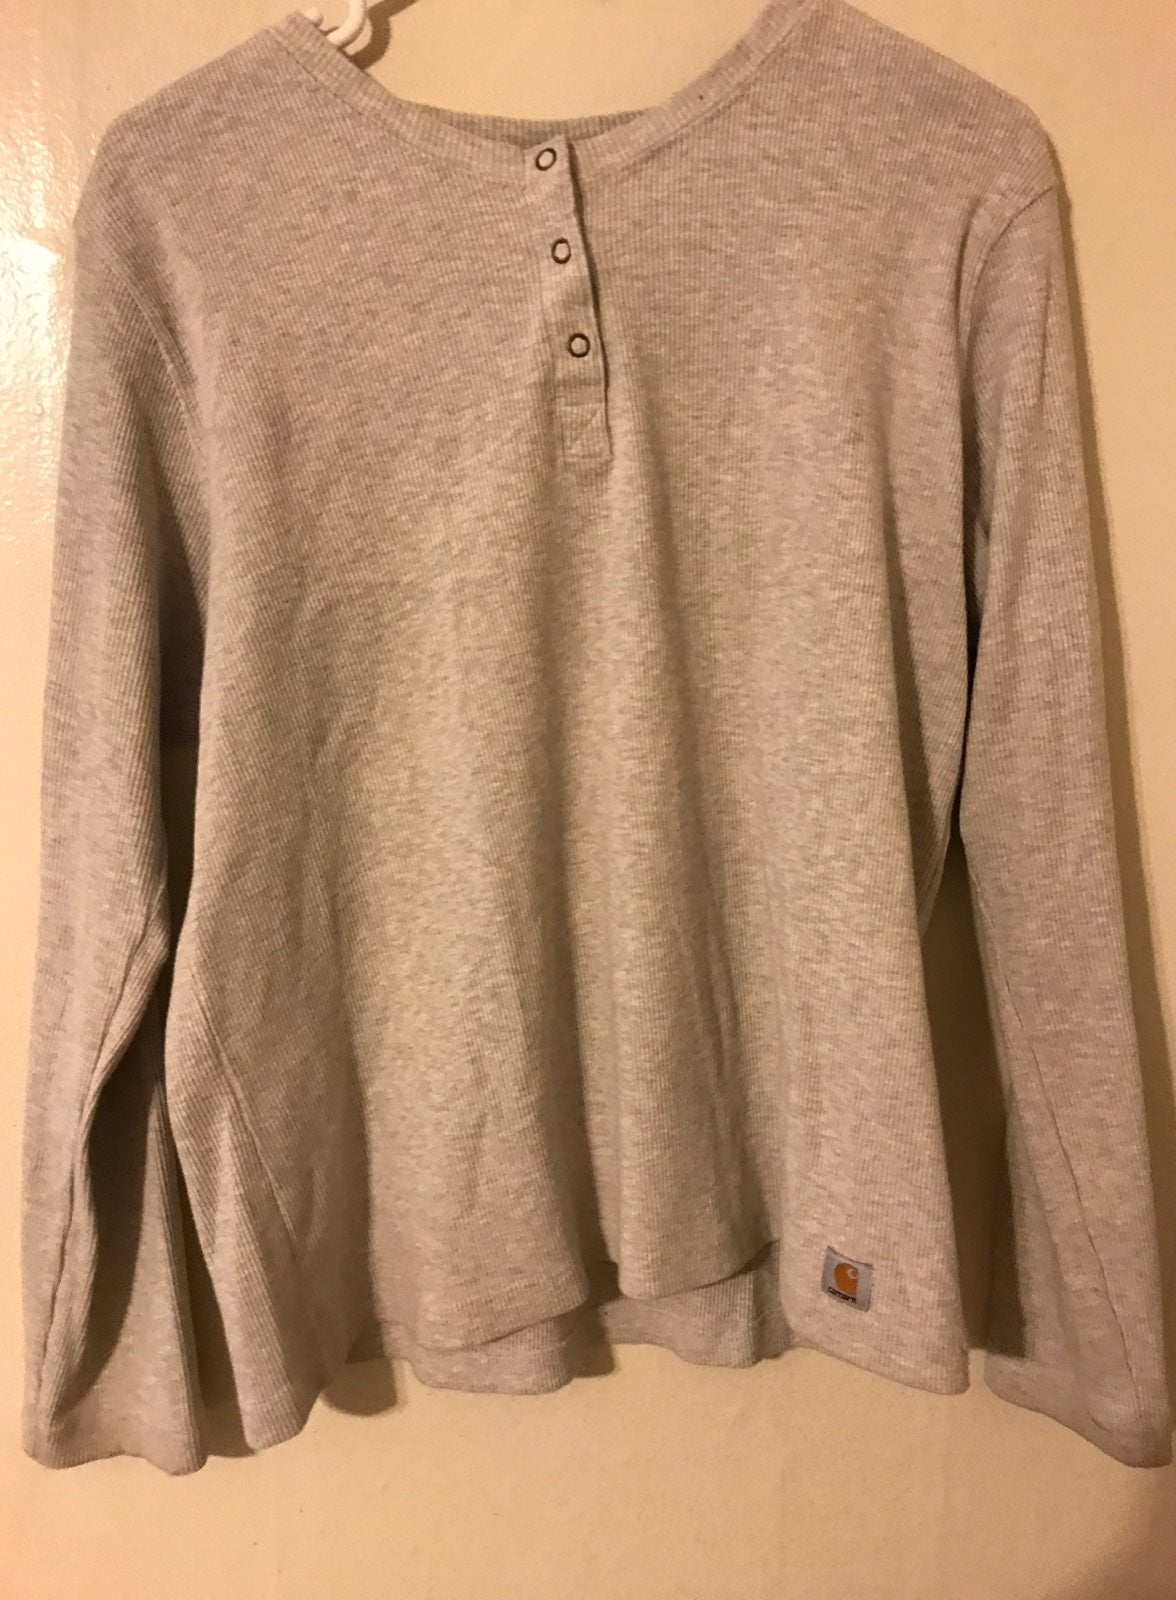 NWOT Women's Carhartt Thermal Shirt